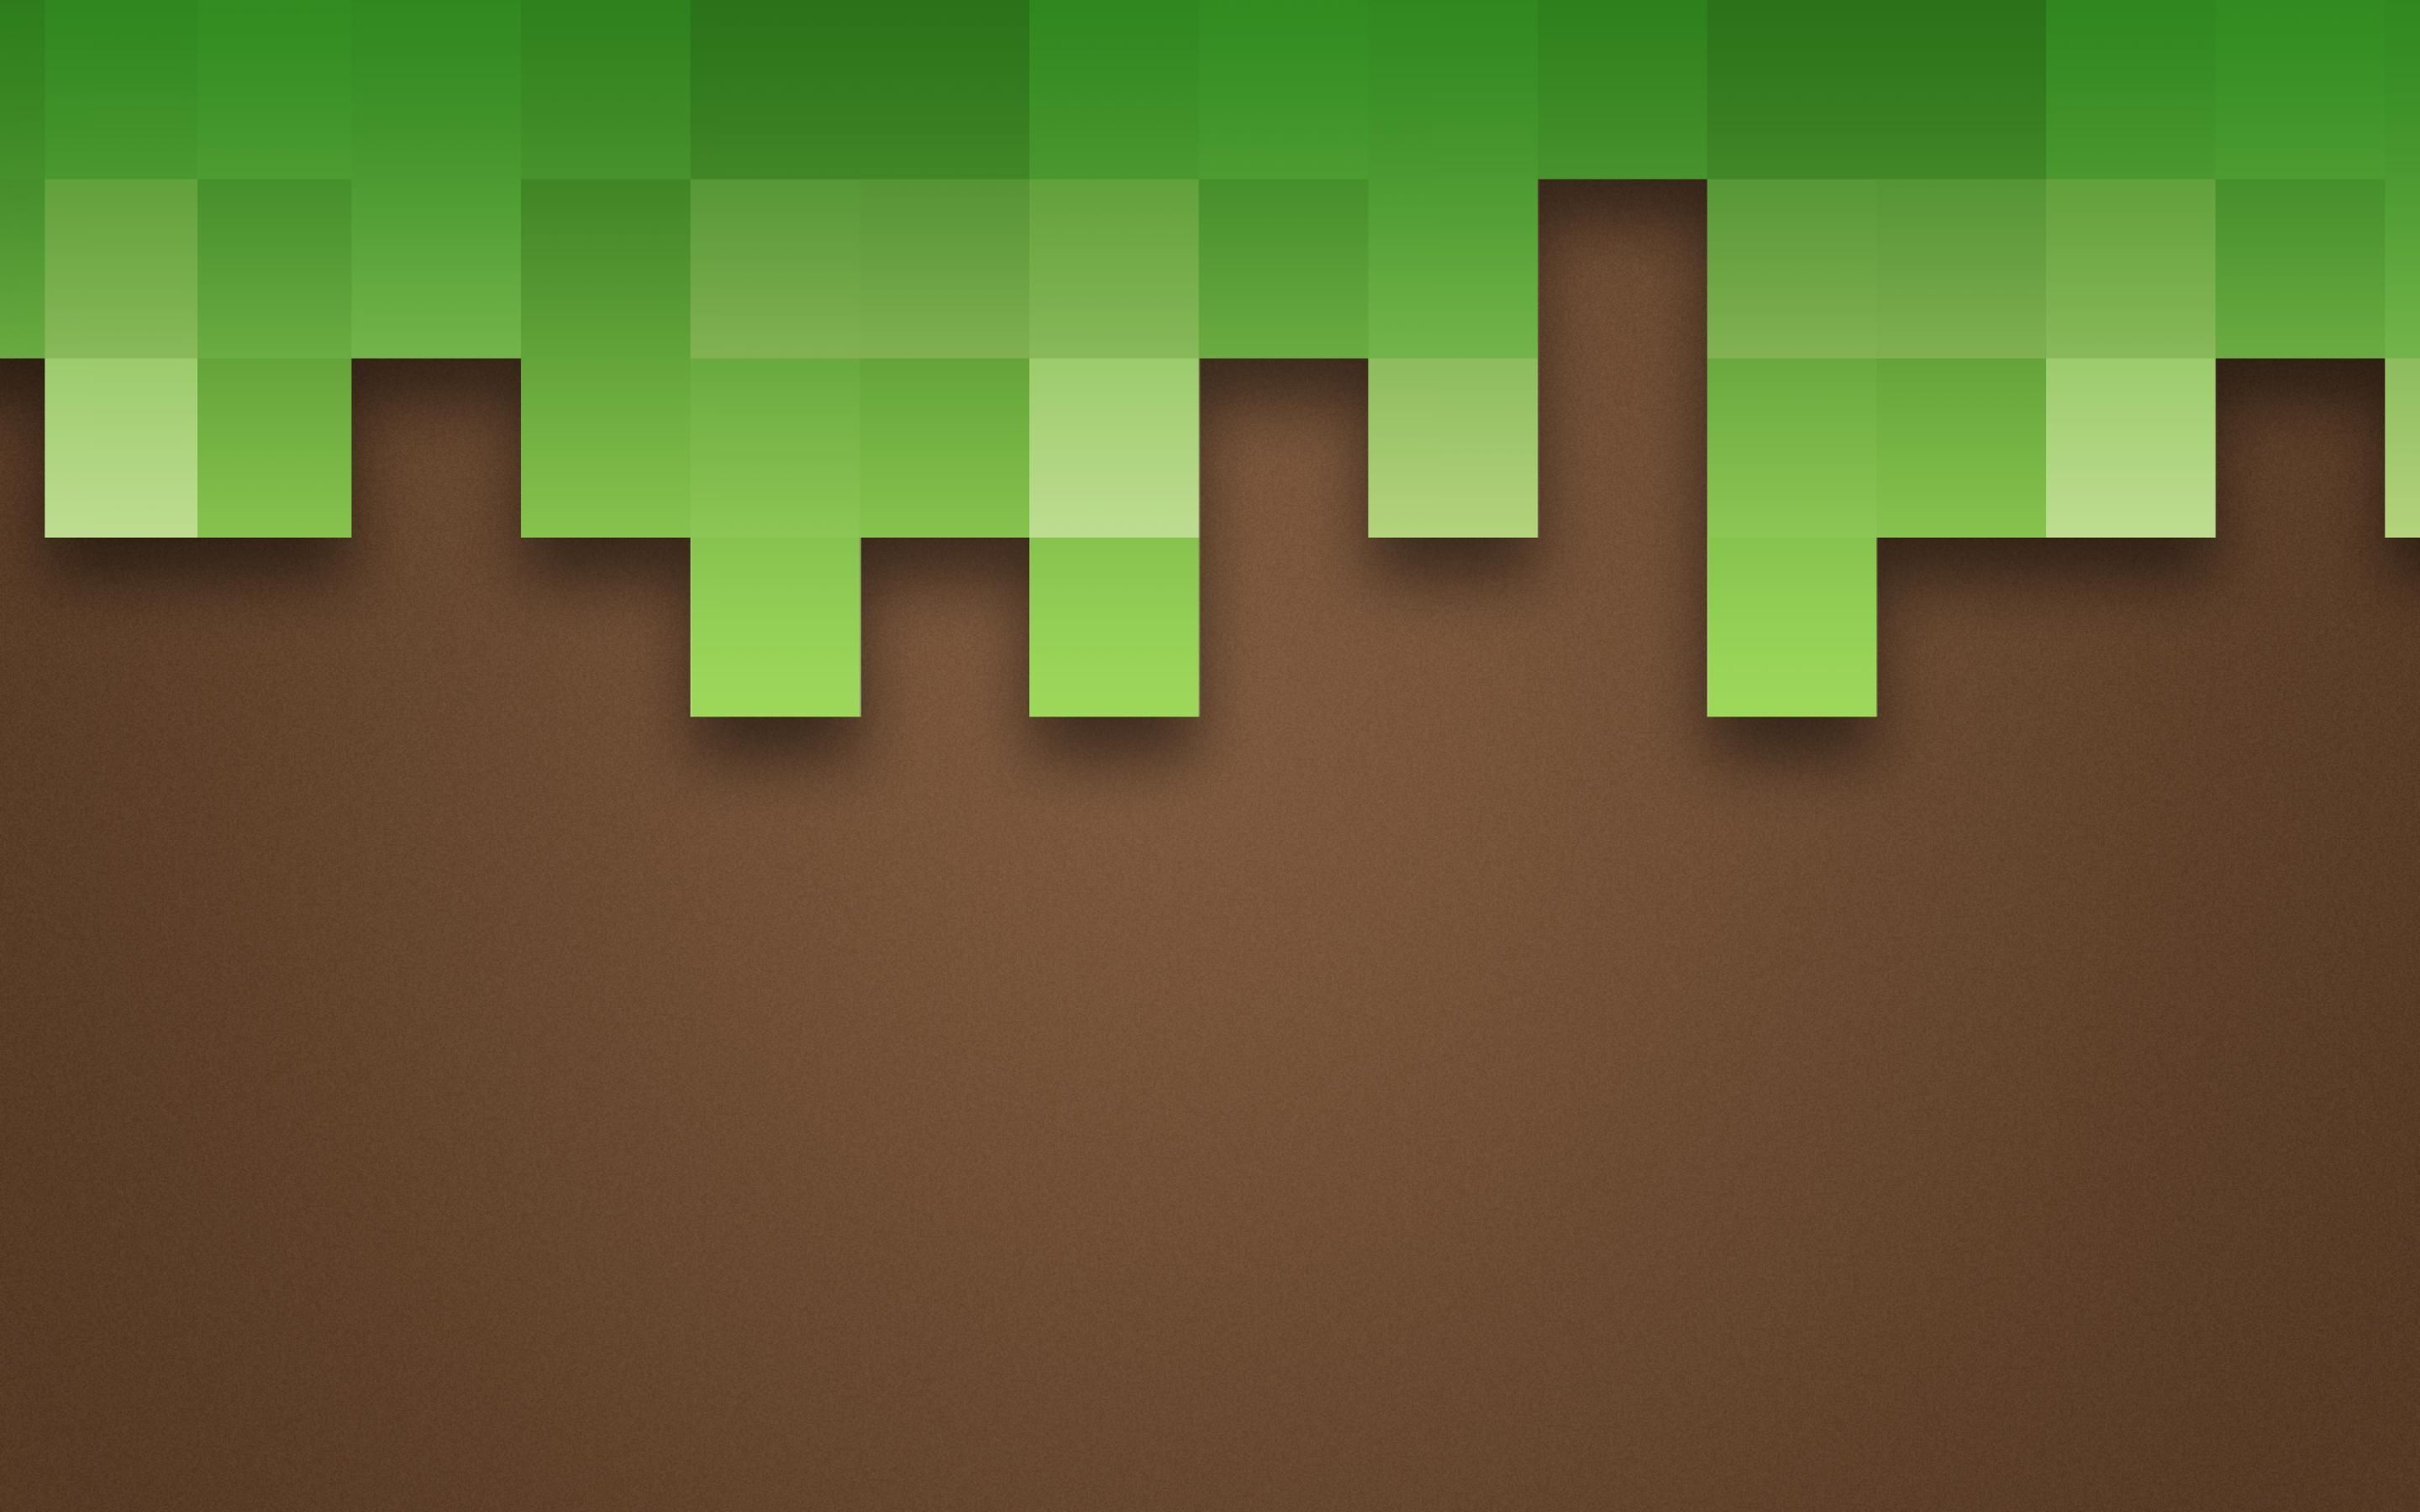 Simple Wallpaper Minecraft Pattern - 8e85833700bd57b3ca68236ea7c6083f  You Should Have_305429.jpg